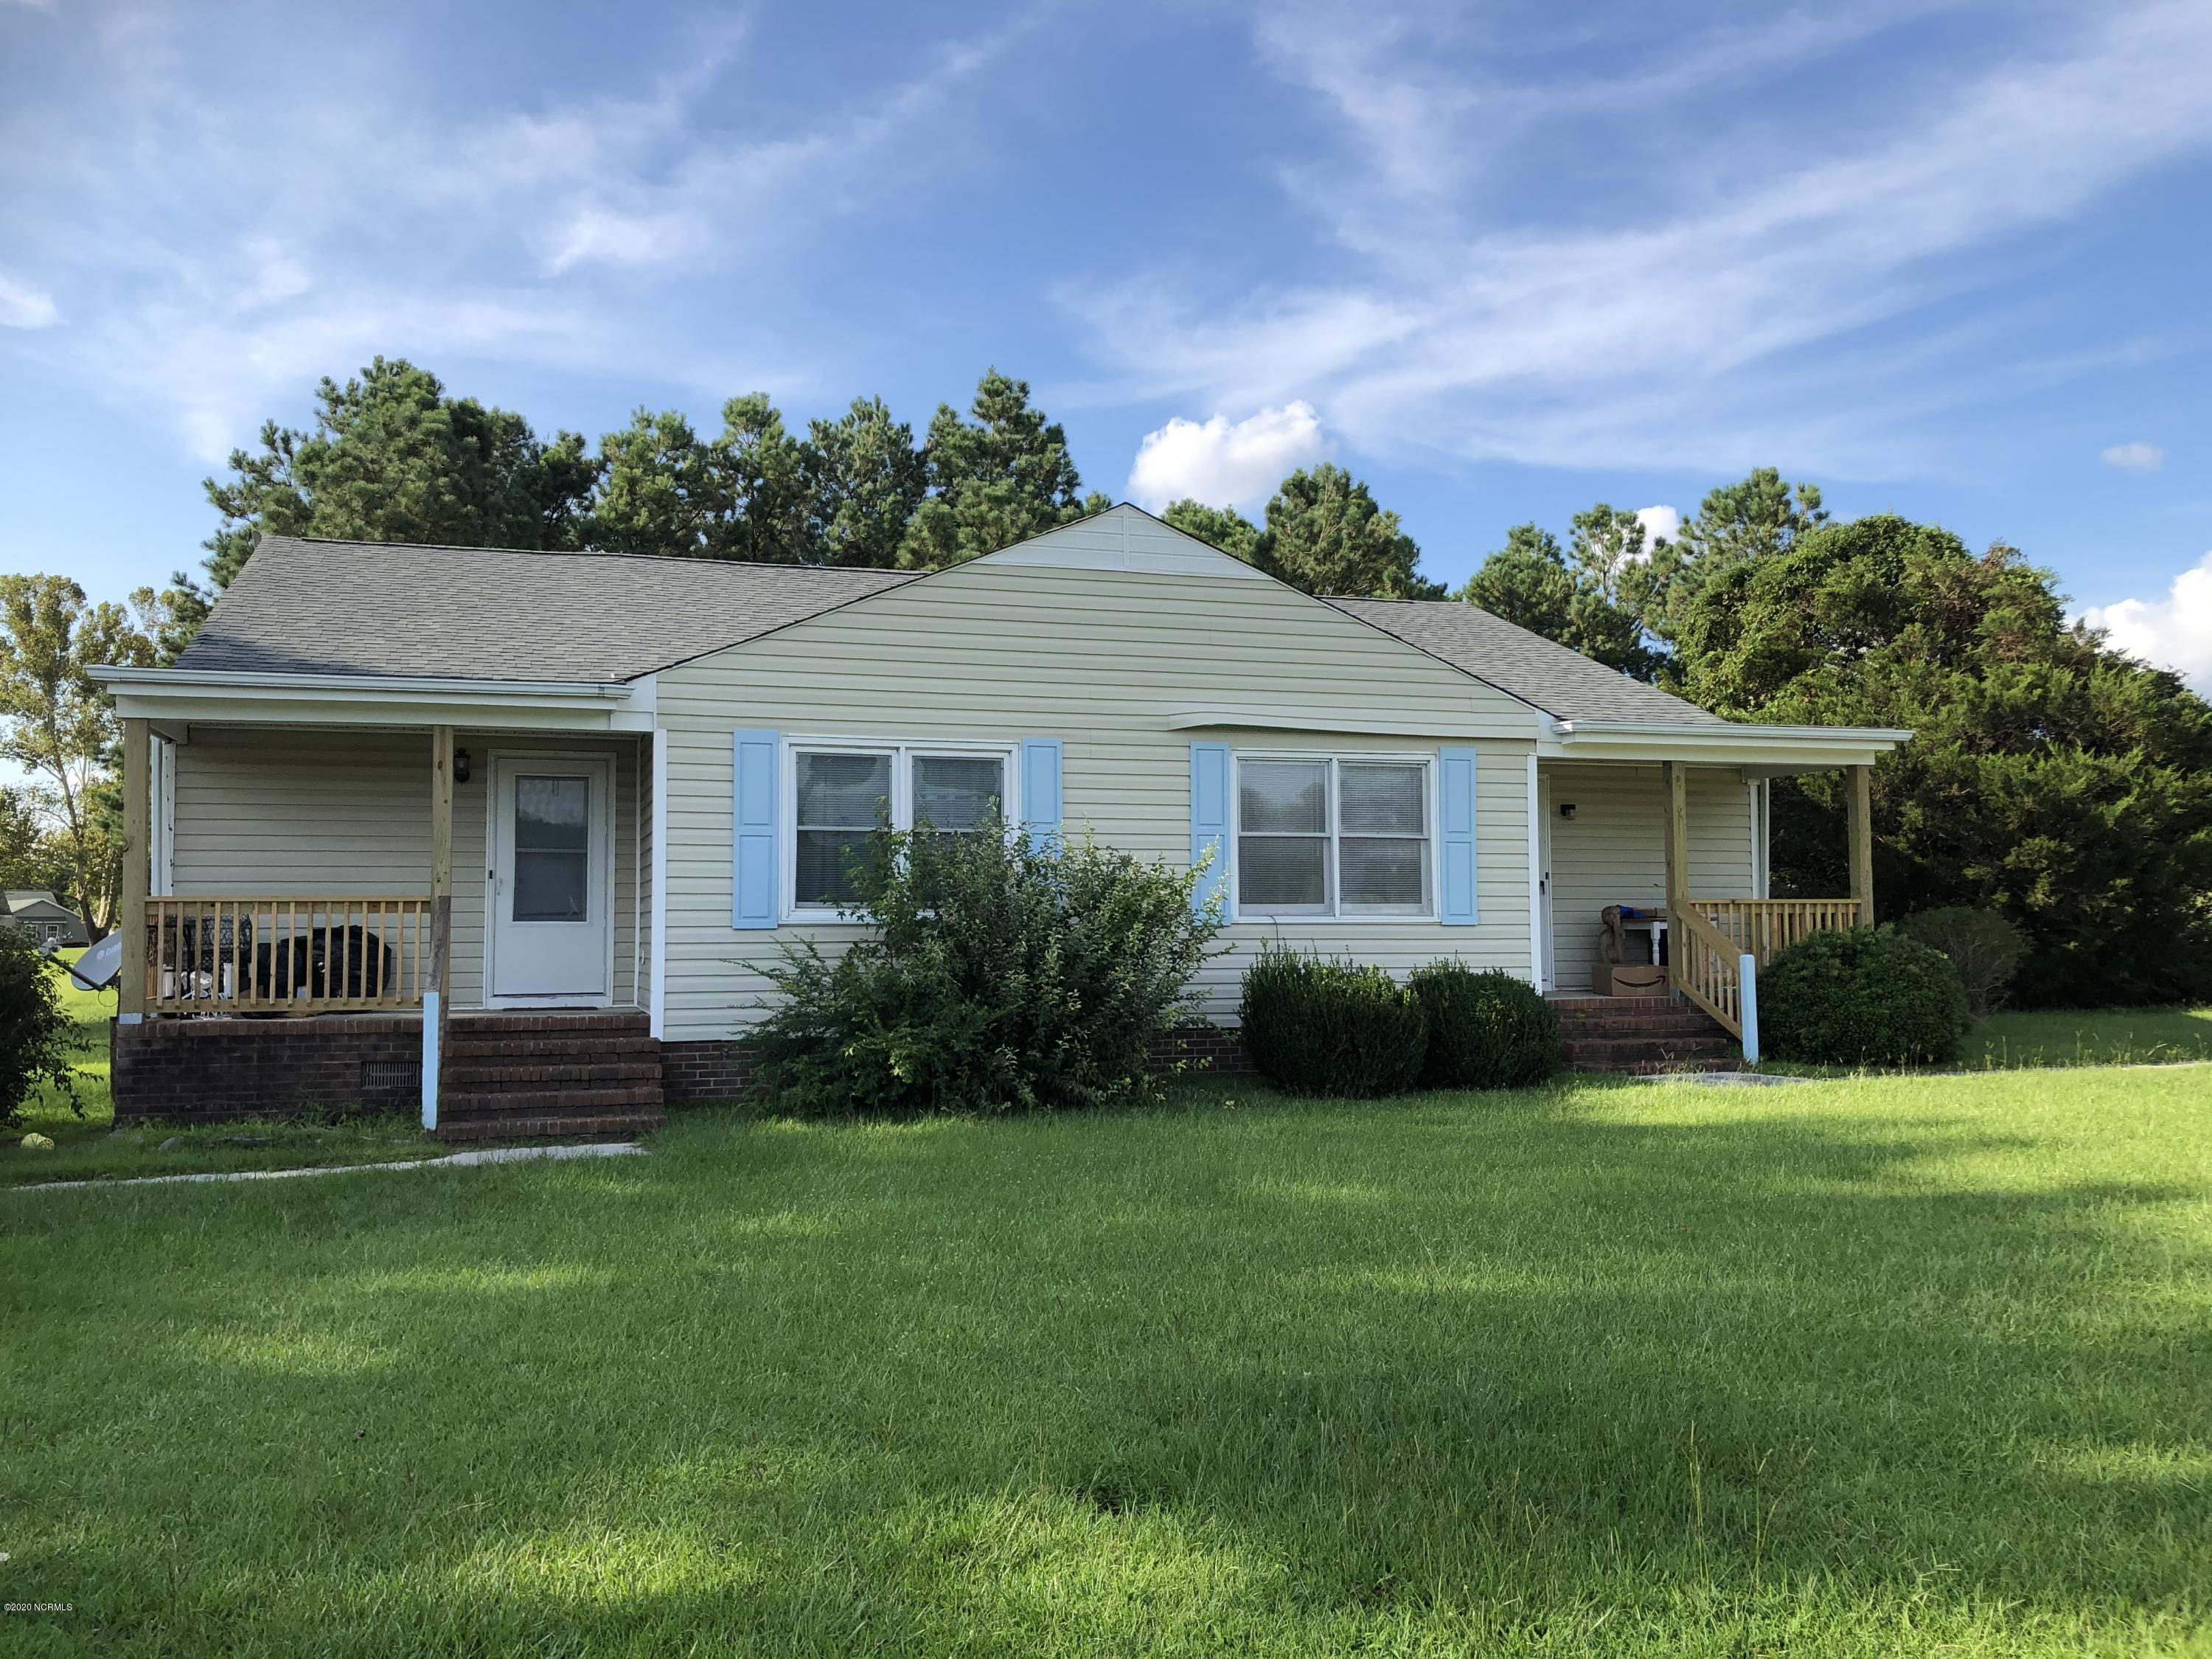 200 Lakeside Drive, Sneads Ferry, North Carolina 28460, 2 Bedrooms Bedrooms, ,2 BathroomsBathrooms,Residential,For Sale,Lakeside,100232143